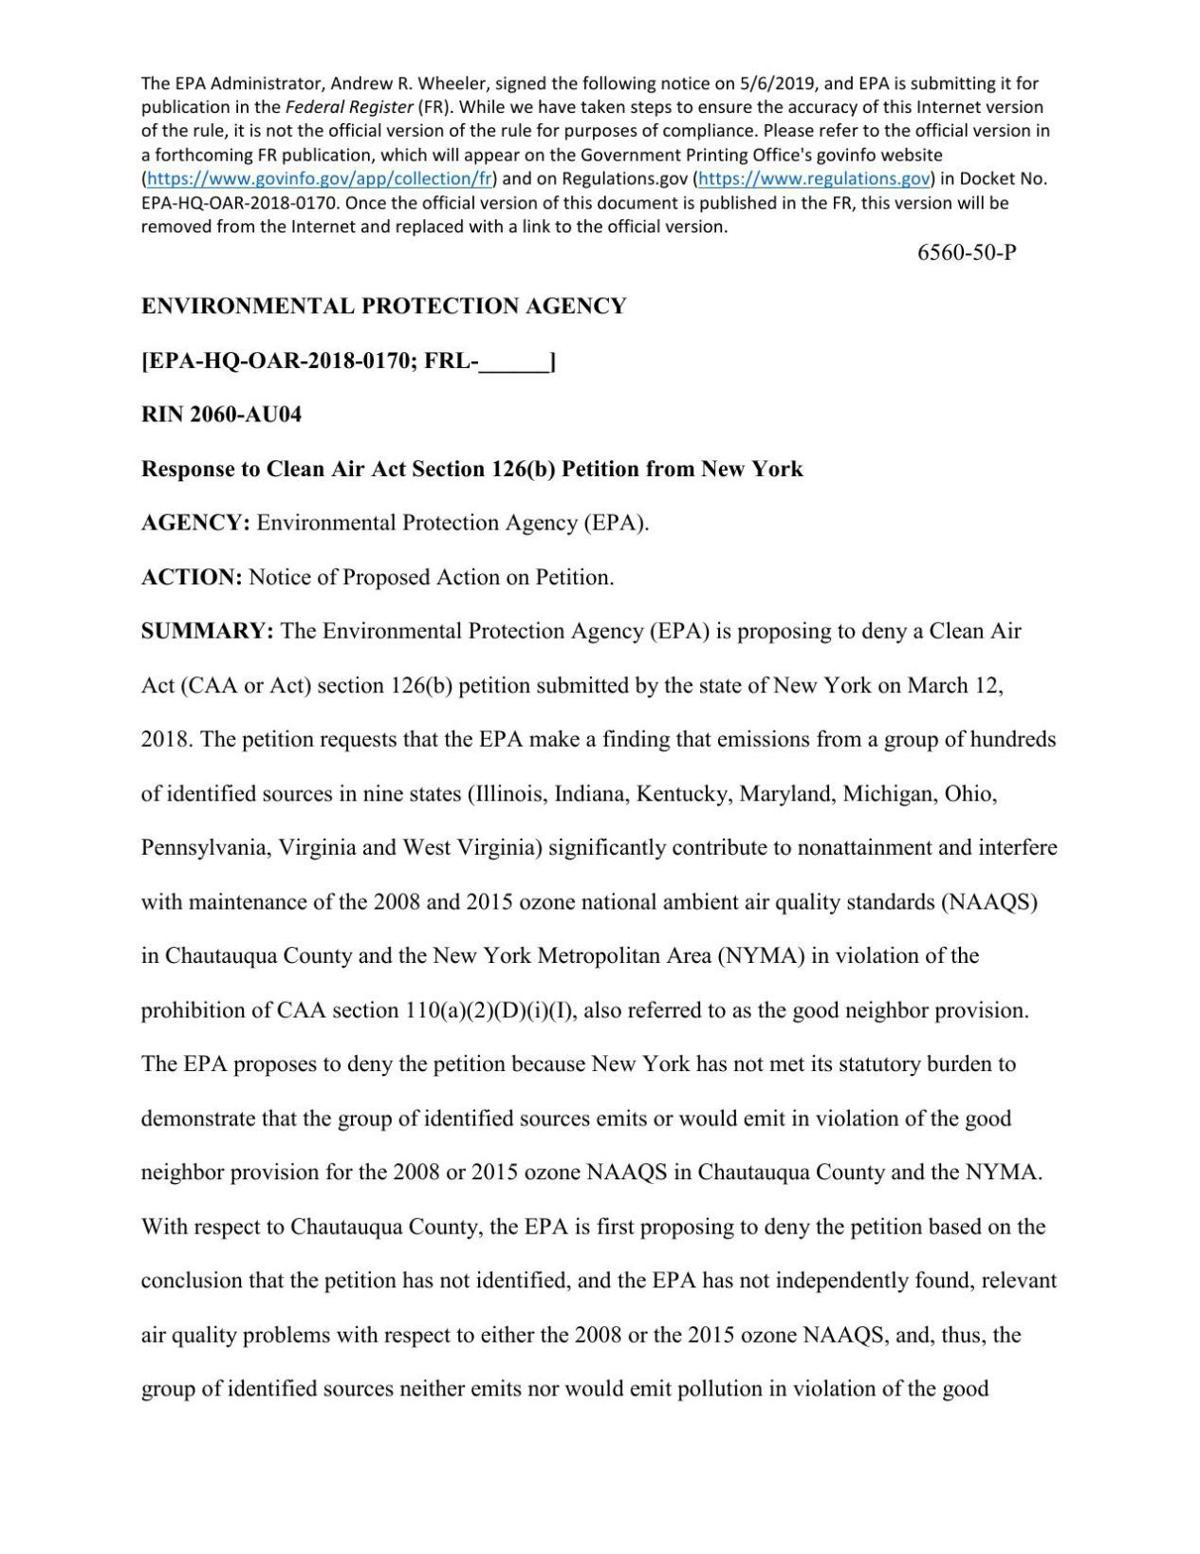 Notice of EPA's proposal to deny New York's air petition